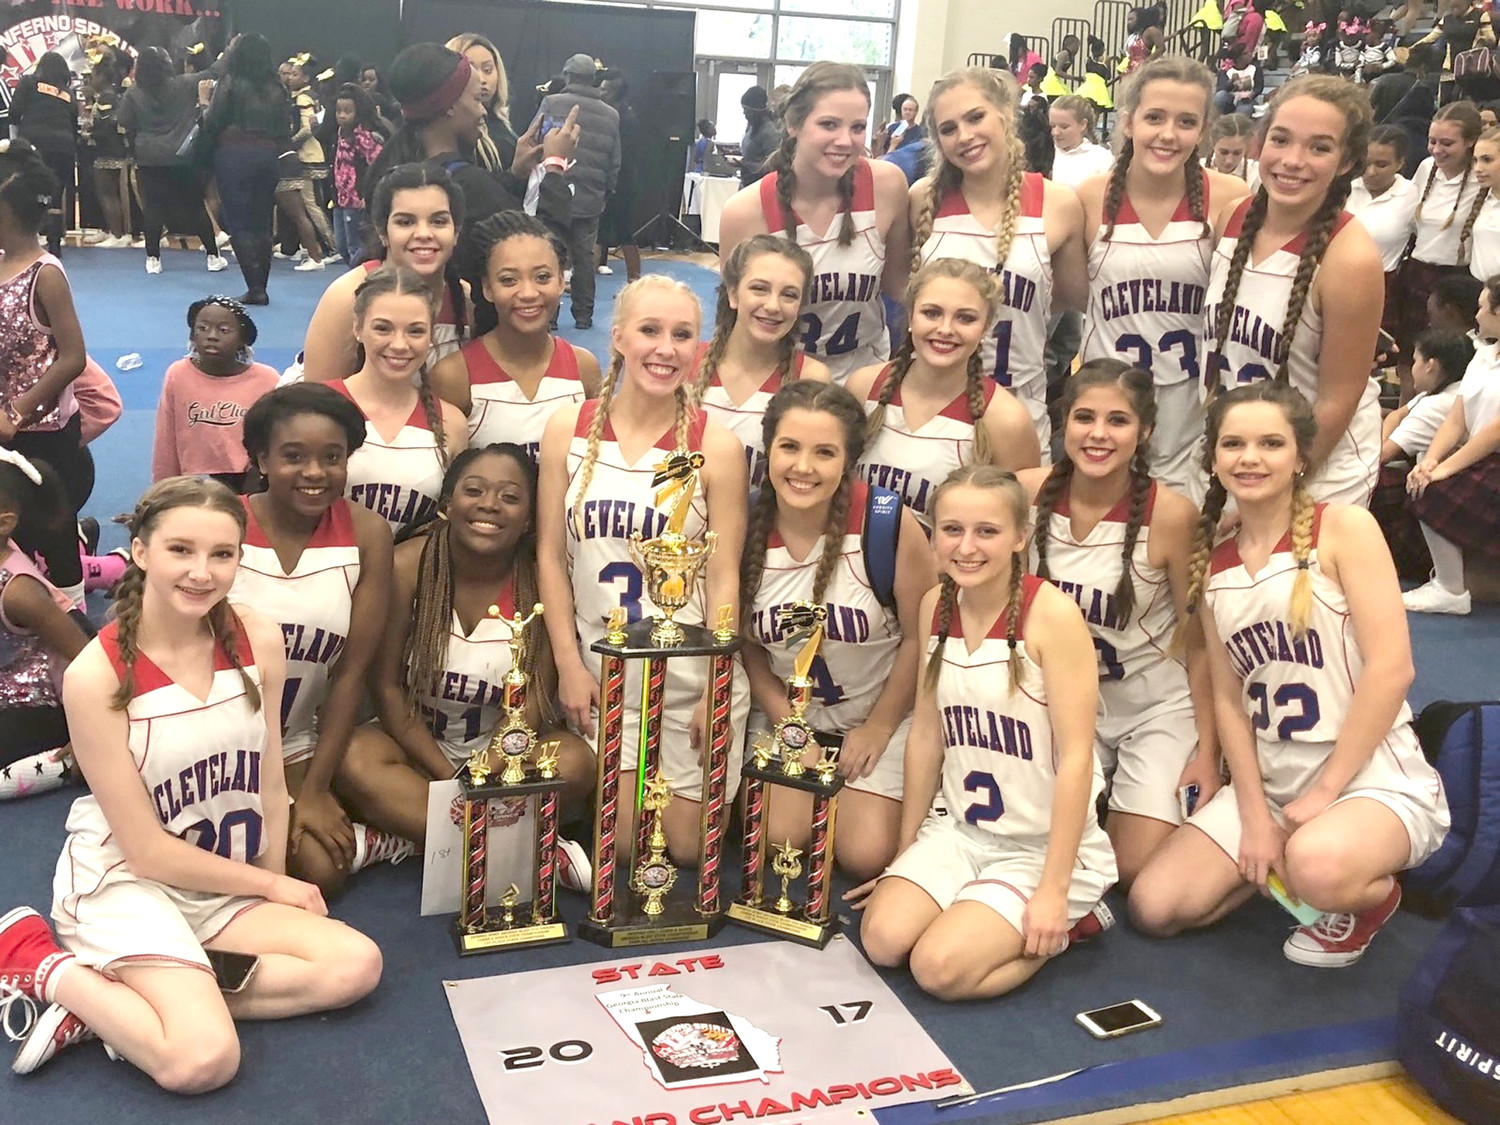 CLEVELAND HIGH SCHOOL'S dance team won several awards during a recent competition in Atlanta, including the prestigious Overall Grand Champion Award.